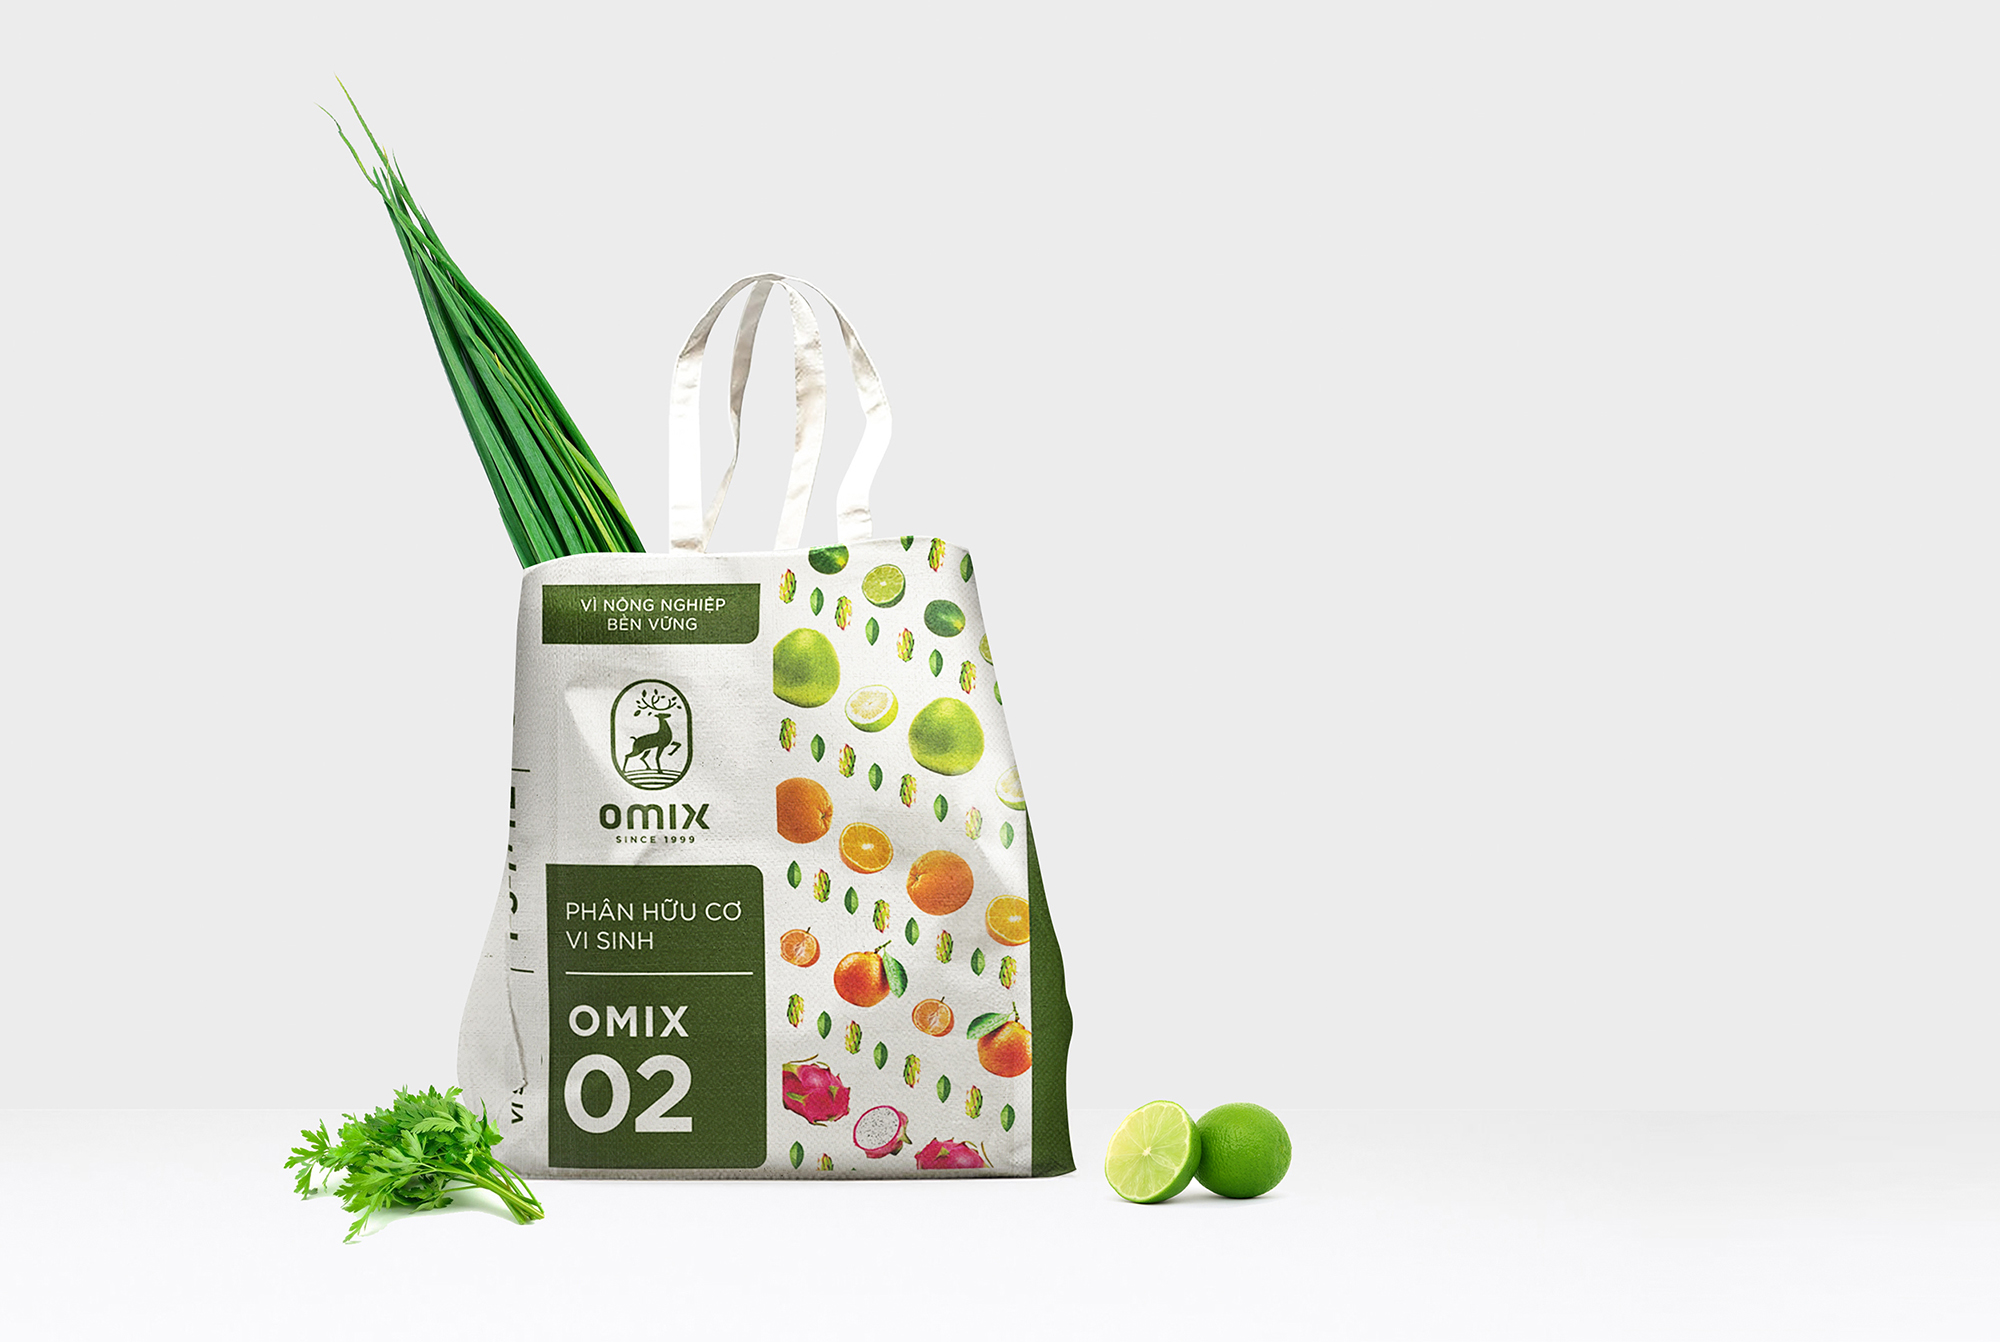 rgb_creative_ideas_design_packaging_bratus_omix_010